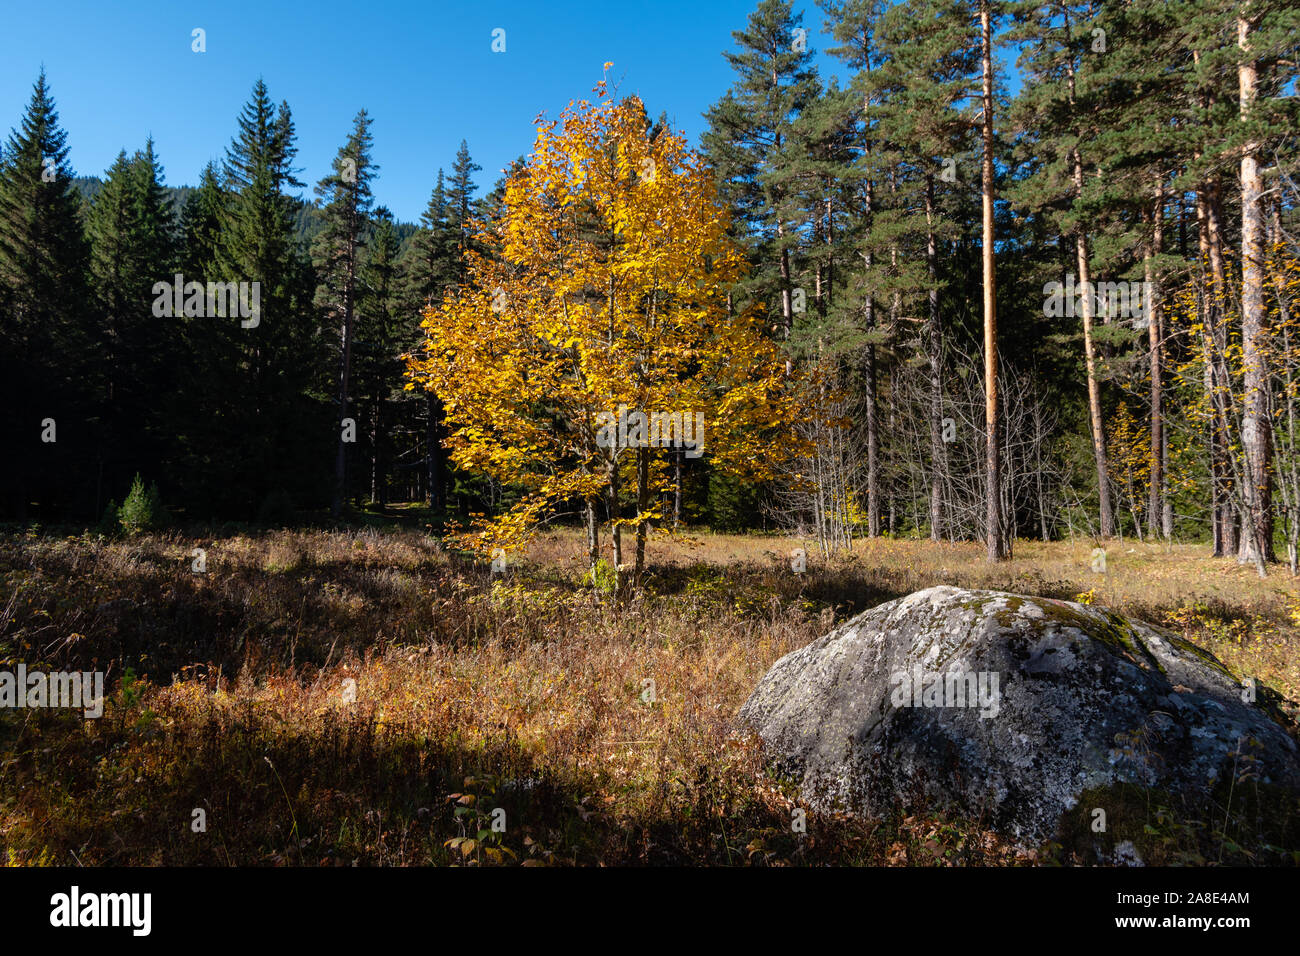 Autumn landscape, a lonely tree with yellow leaves on a meadow with dry grass, in the foreground a large stone, on background of a coniferous forest. Stock Photo